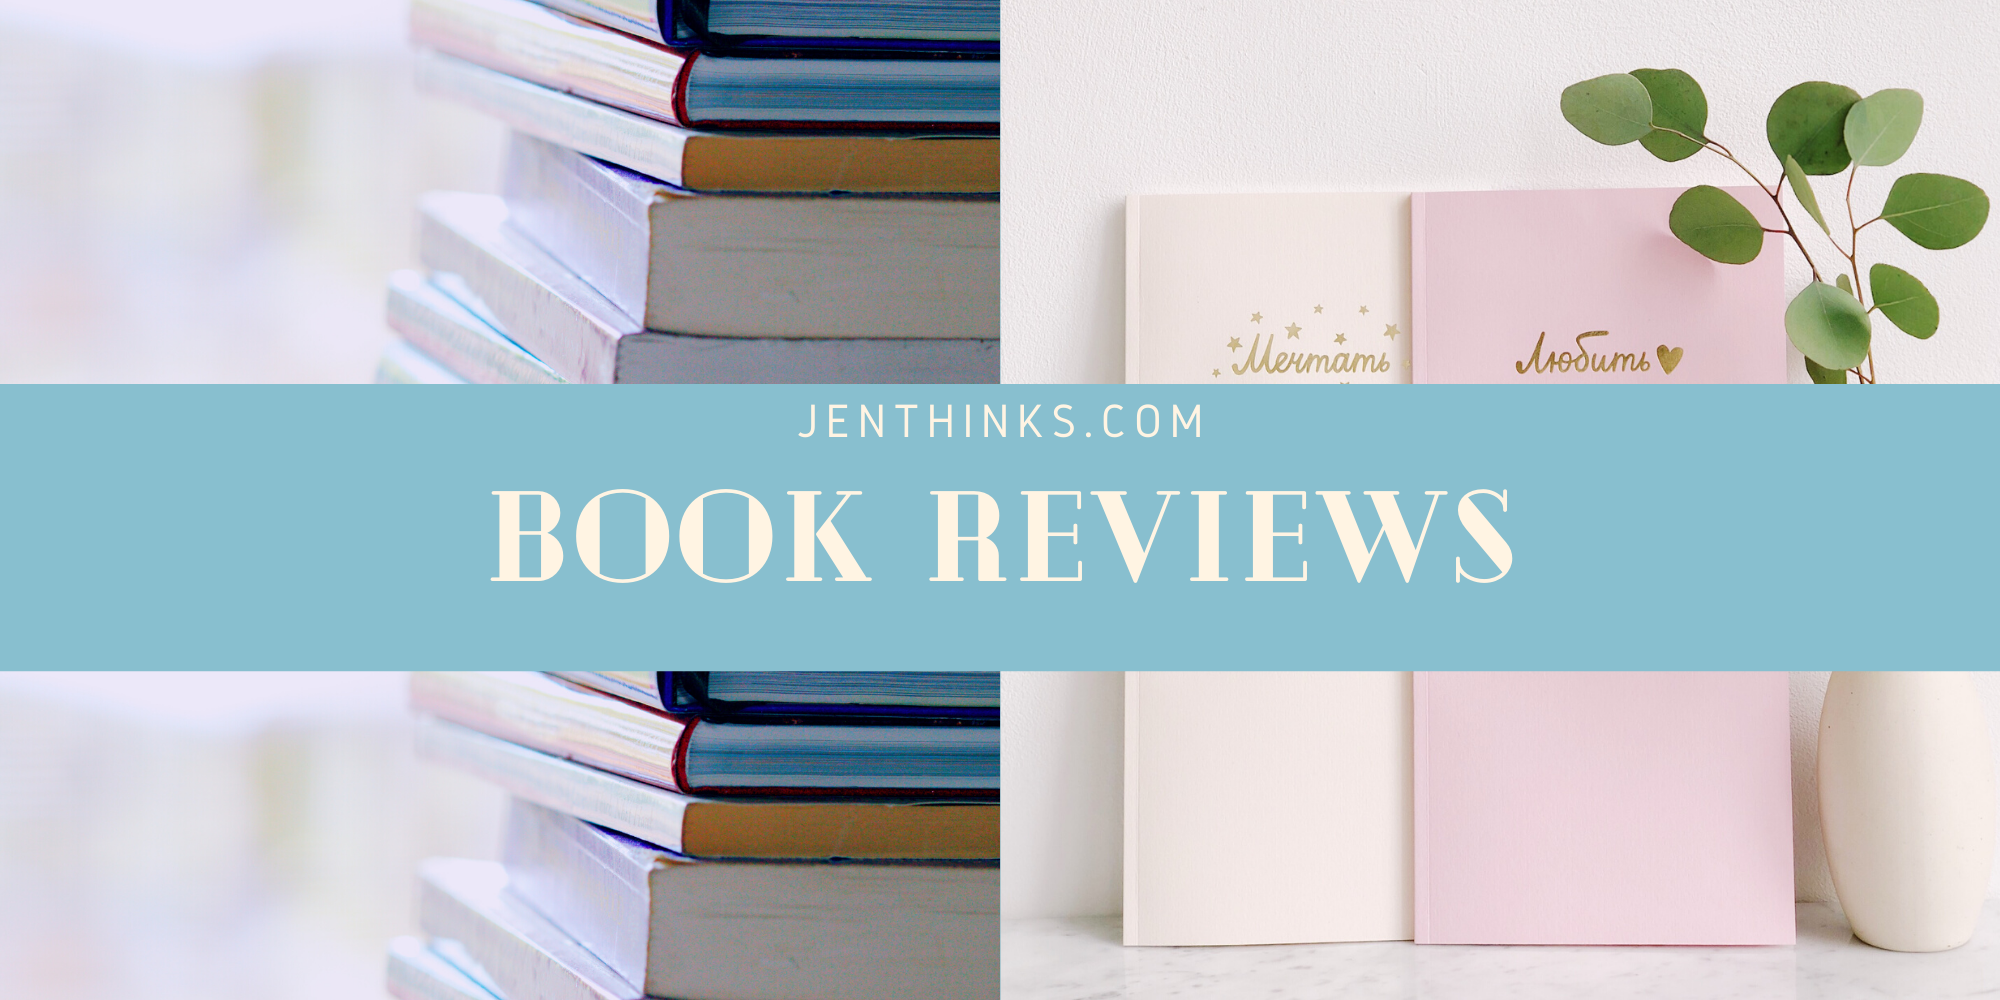 Book Review Jenthinks